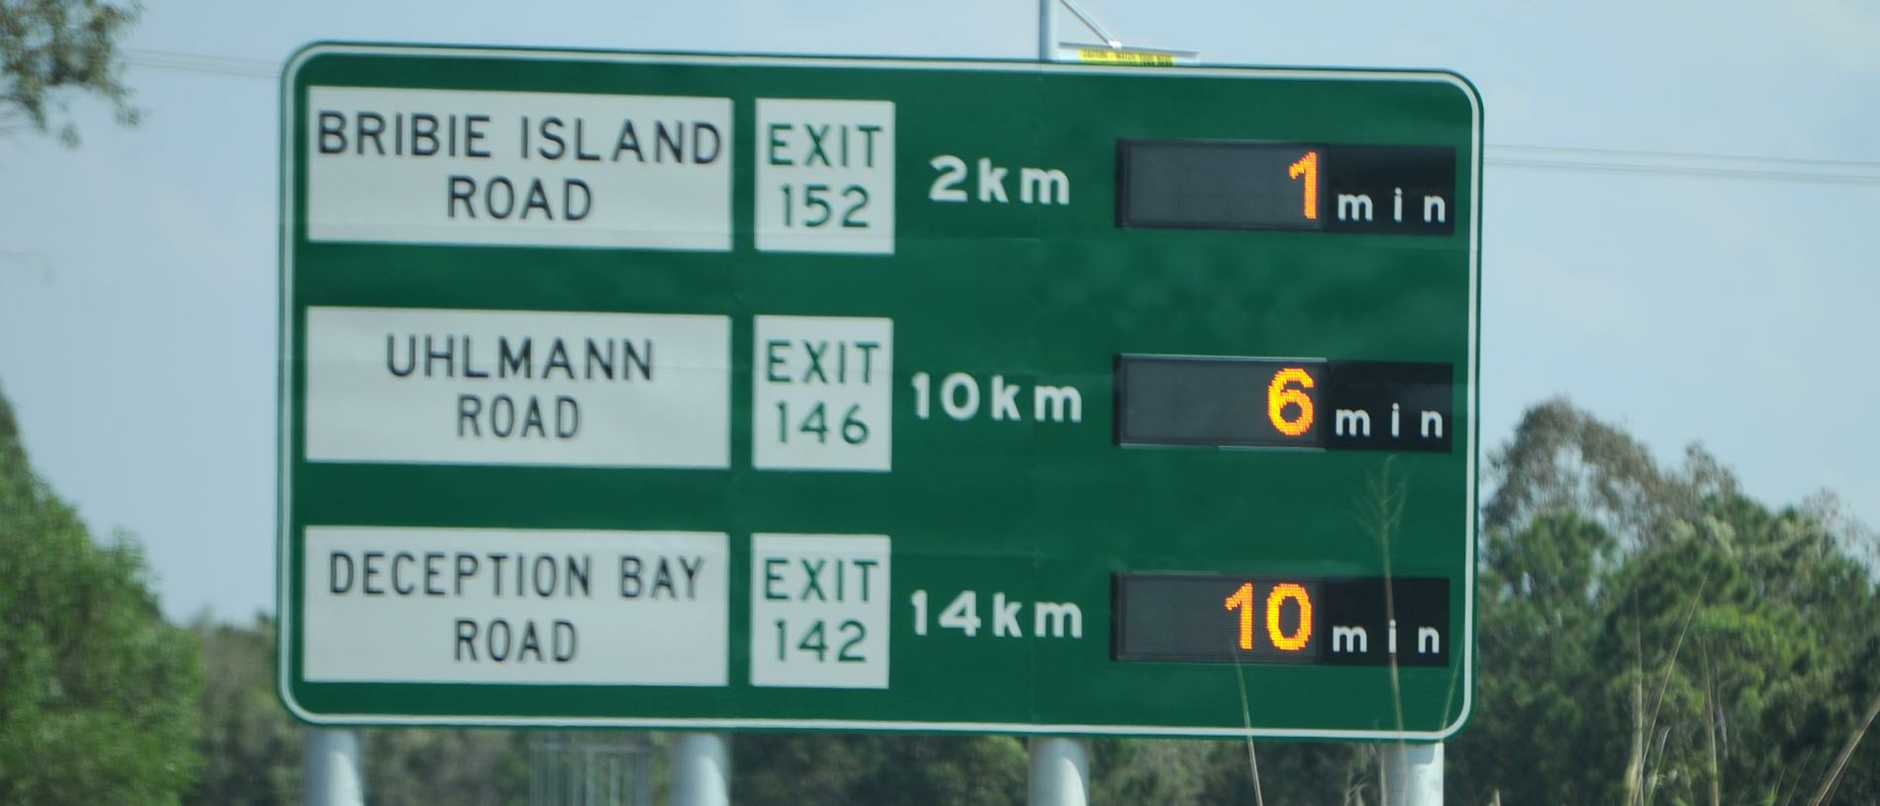 New sign showing the times on the Bruce highway